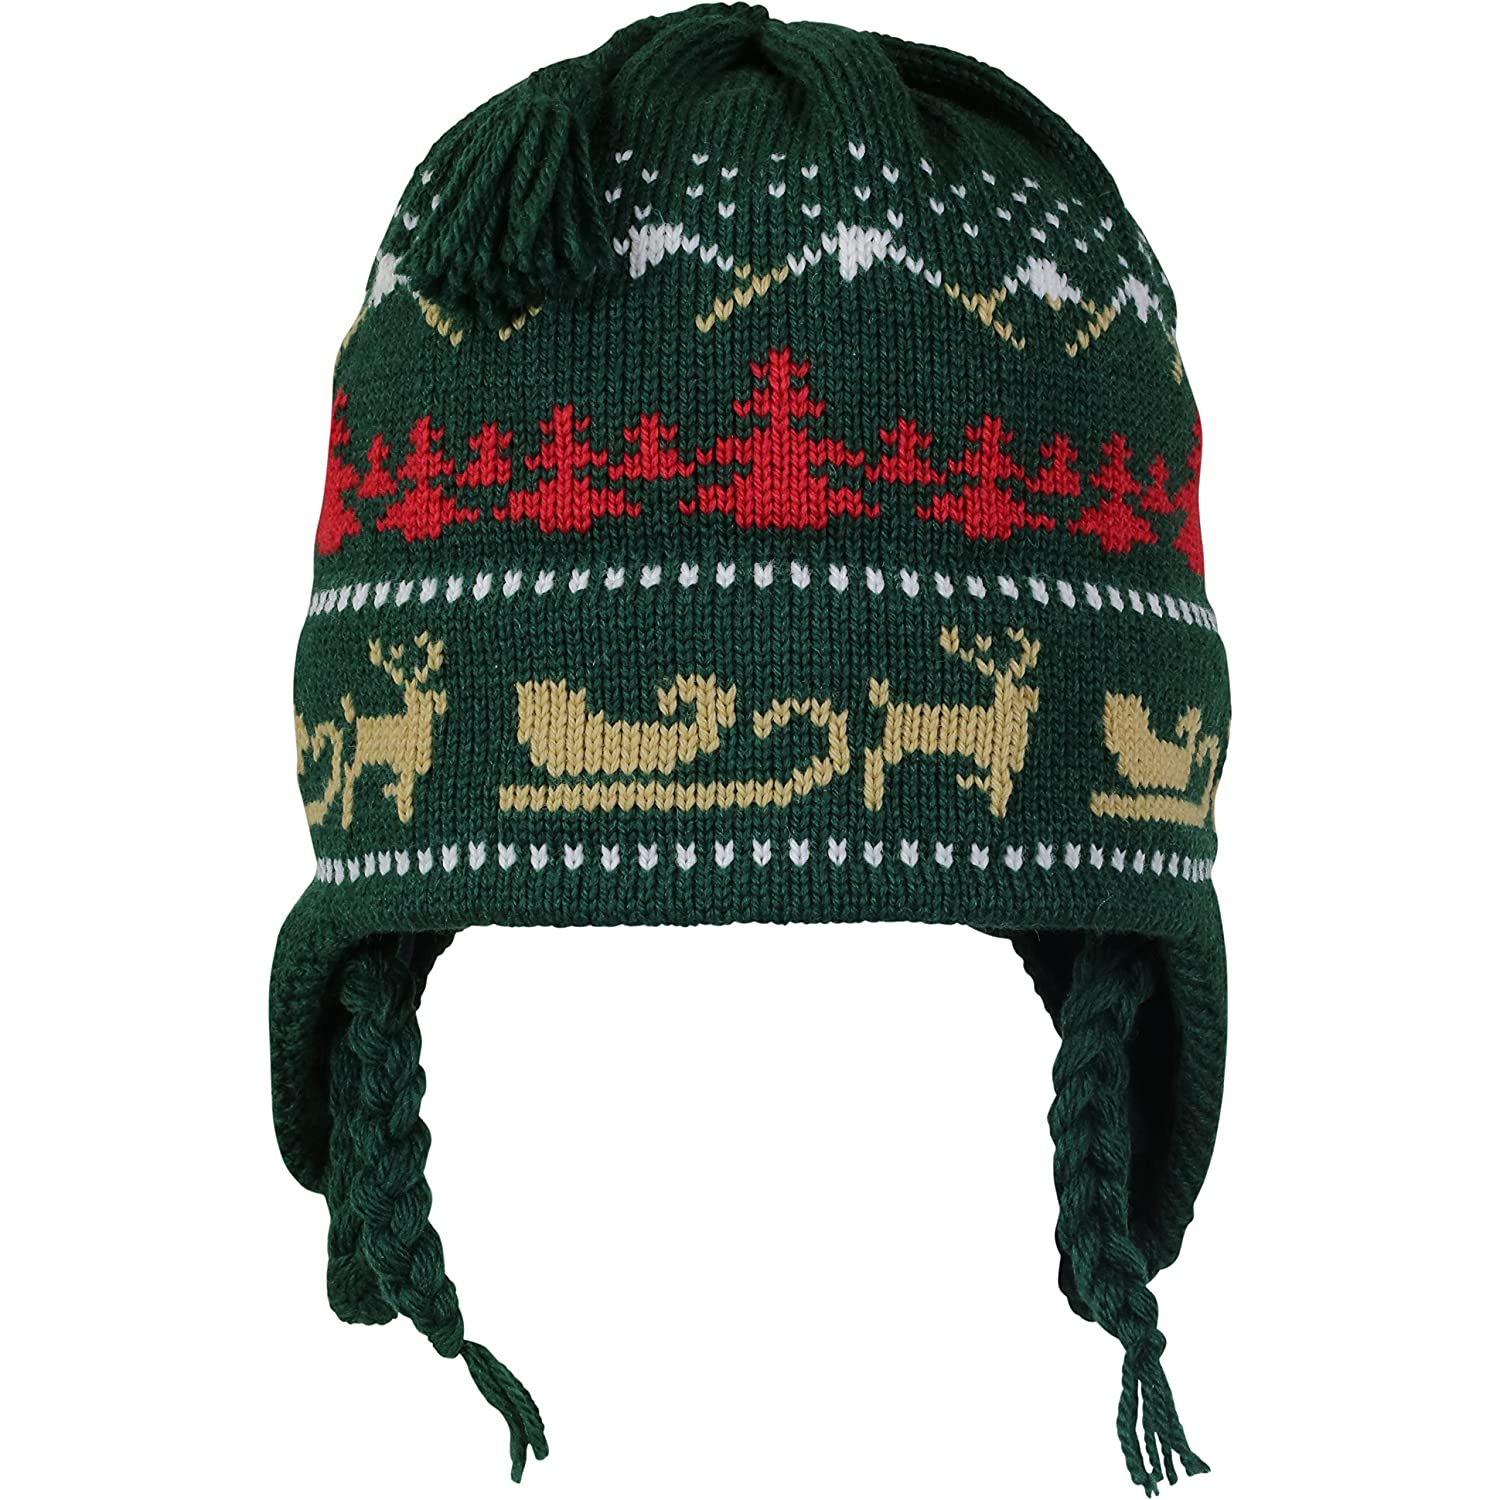 Vermont Originals - Christmas Sled, American Made Wool Winter Hat, Dark Green